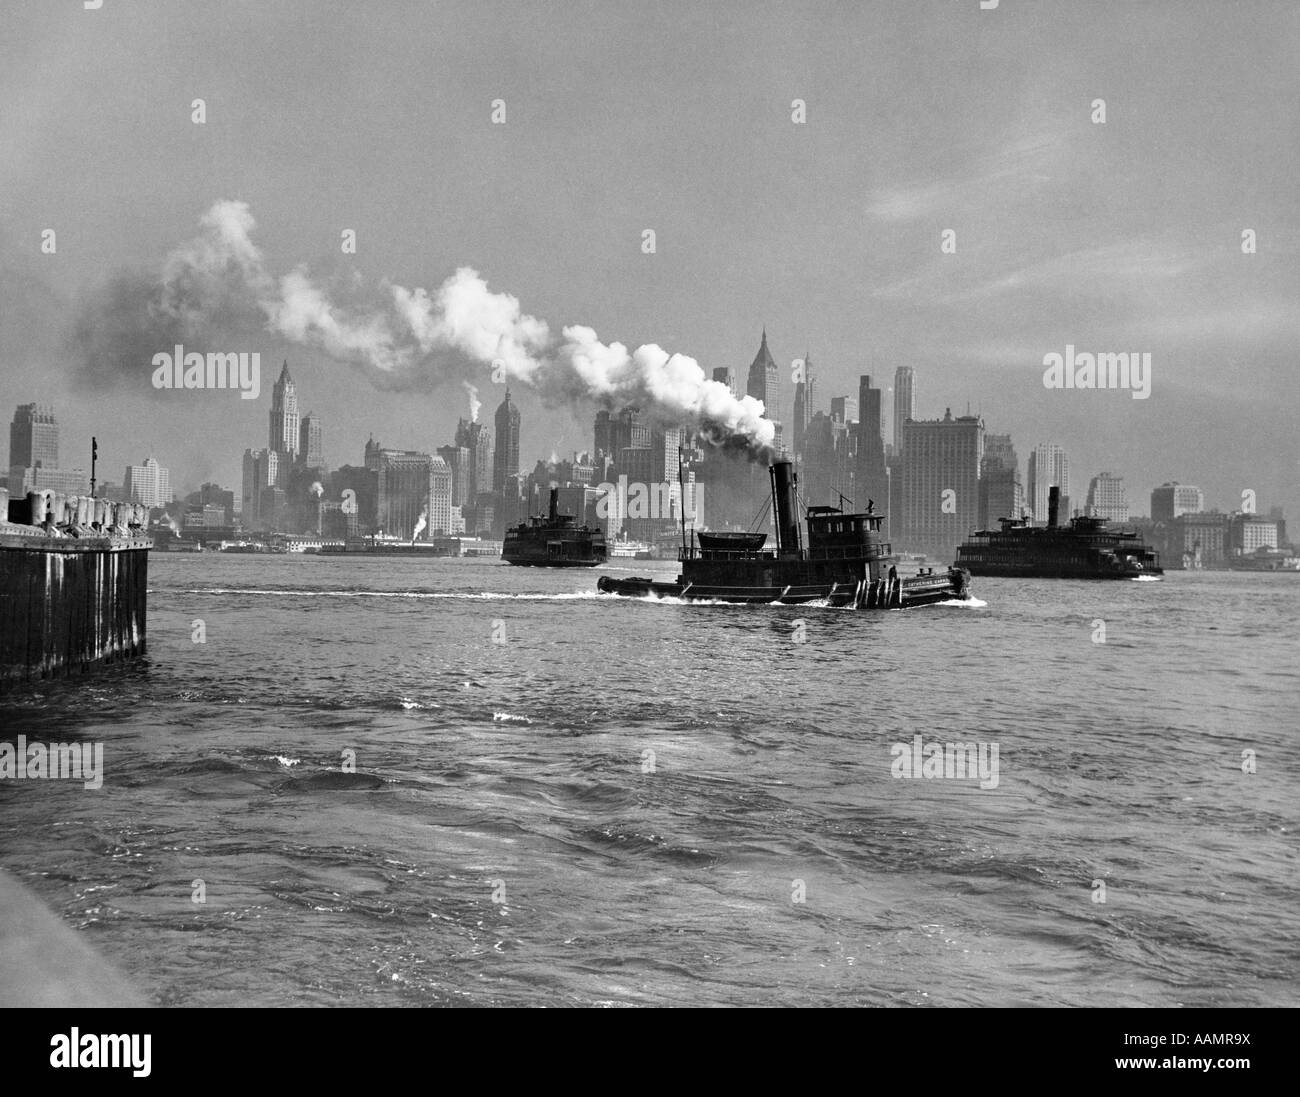 1930s 1933 STEAM ENGINE TUG BOAT AND STATEN ISLAND FERRY BOATS ON HUDSON RIVER AGAINST MANHATTAN ISLAND SKYLINE - Stock Image